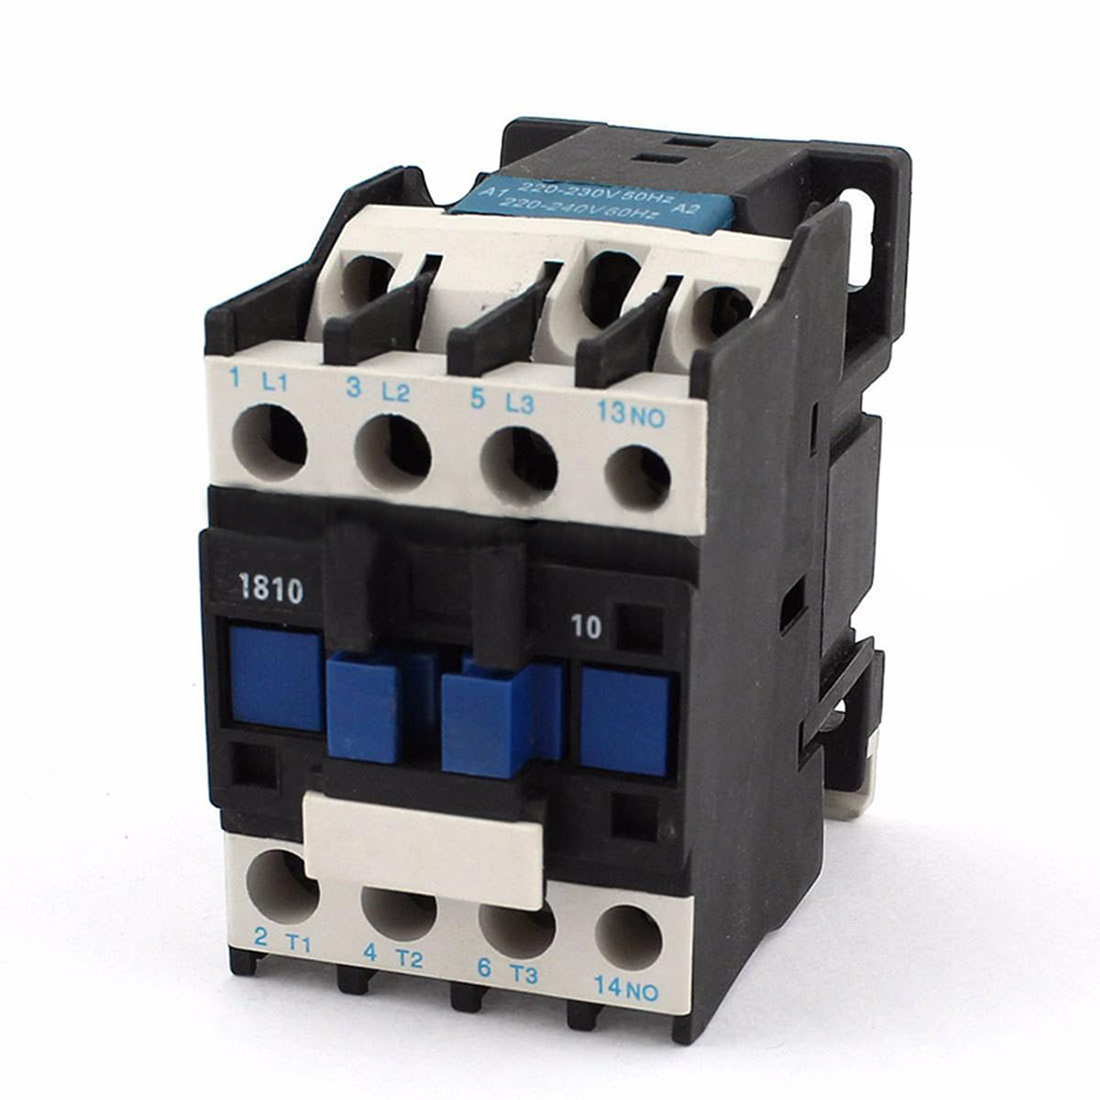 230v 3 phase contactor wiring 3 phase motor wiring diagrams 230v power ac contactor 1no ac 220v 50/60hz coil motor starter ... #12